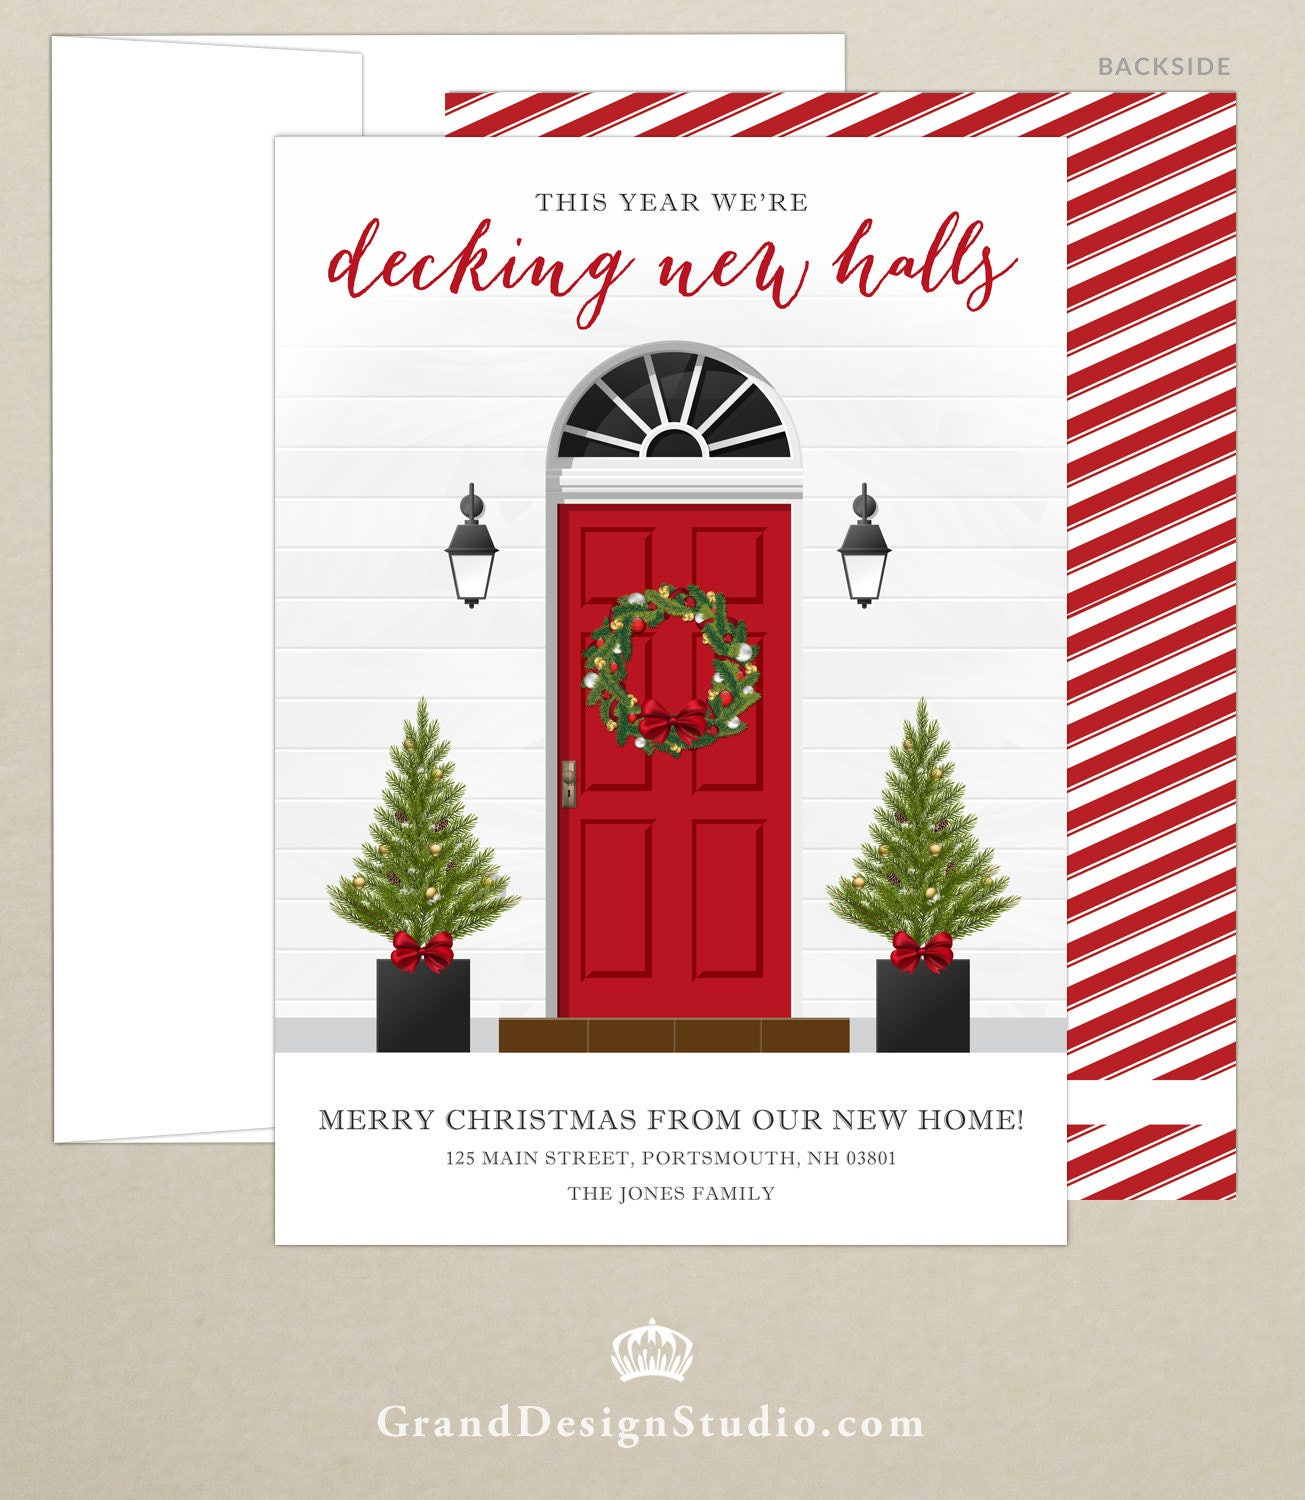 Just Moved New Address Holiday Card Christmas Card   Etsy